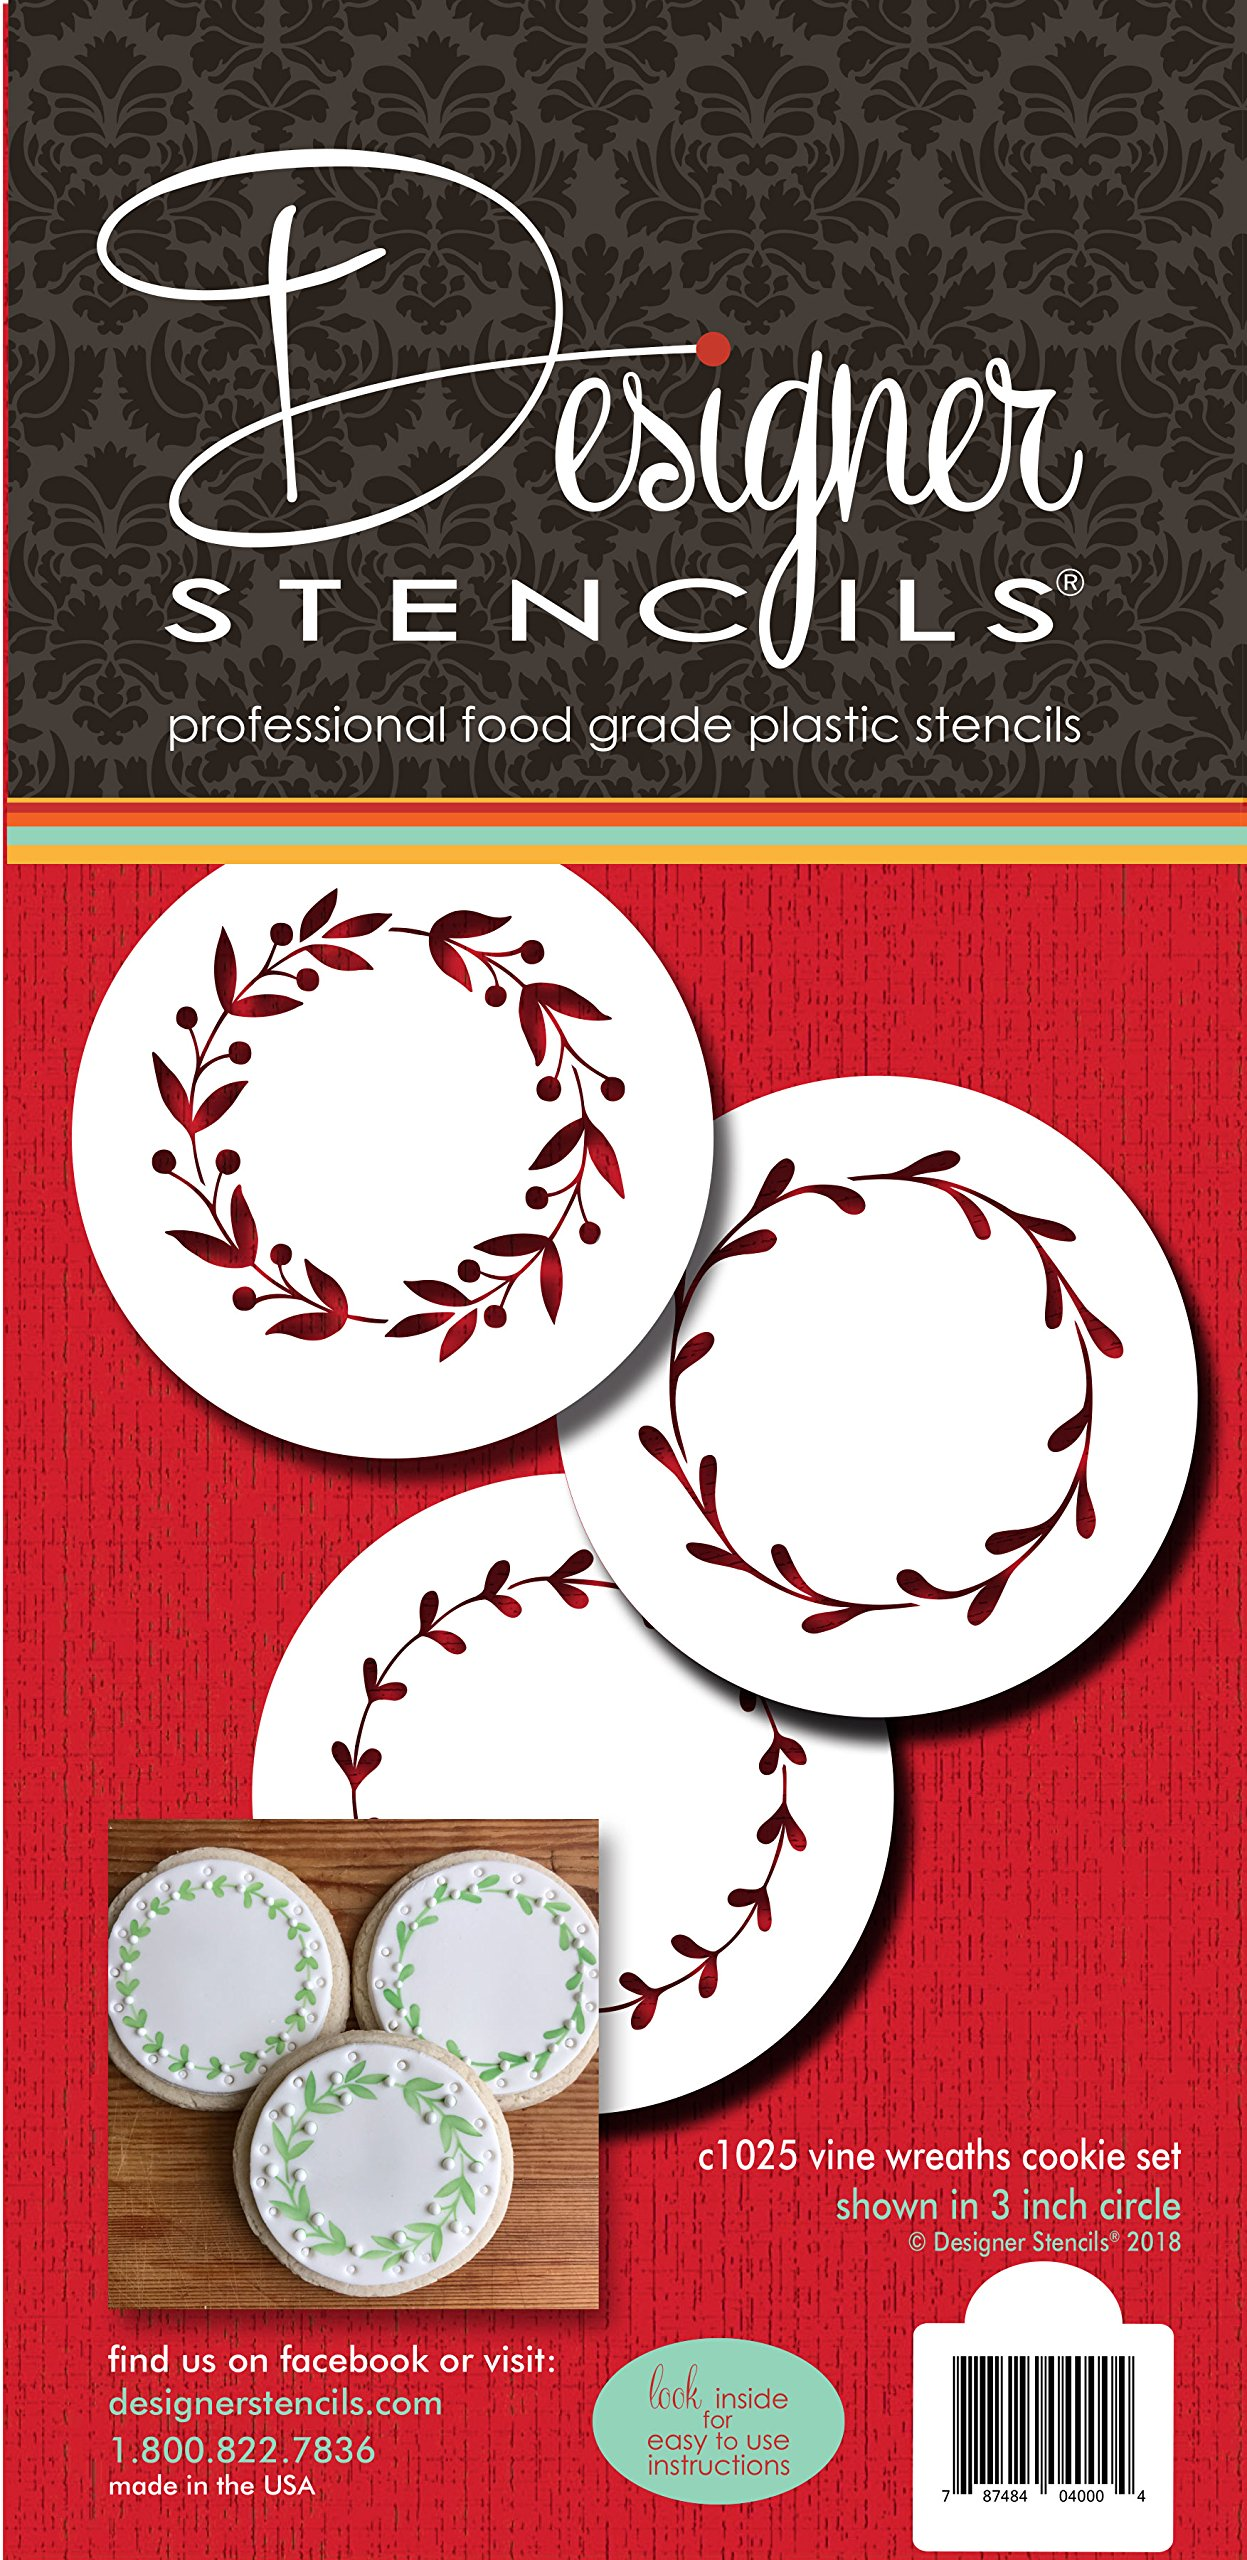 Vine Wreaths Cookie Stencil Set C1025 by Designer Stencils